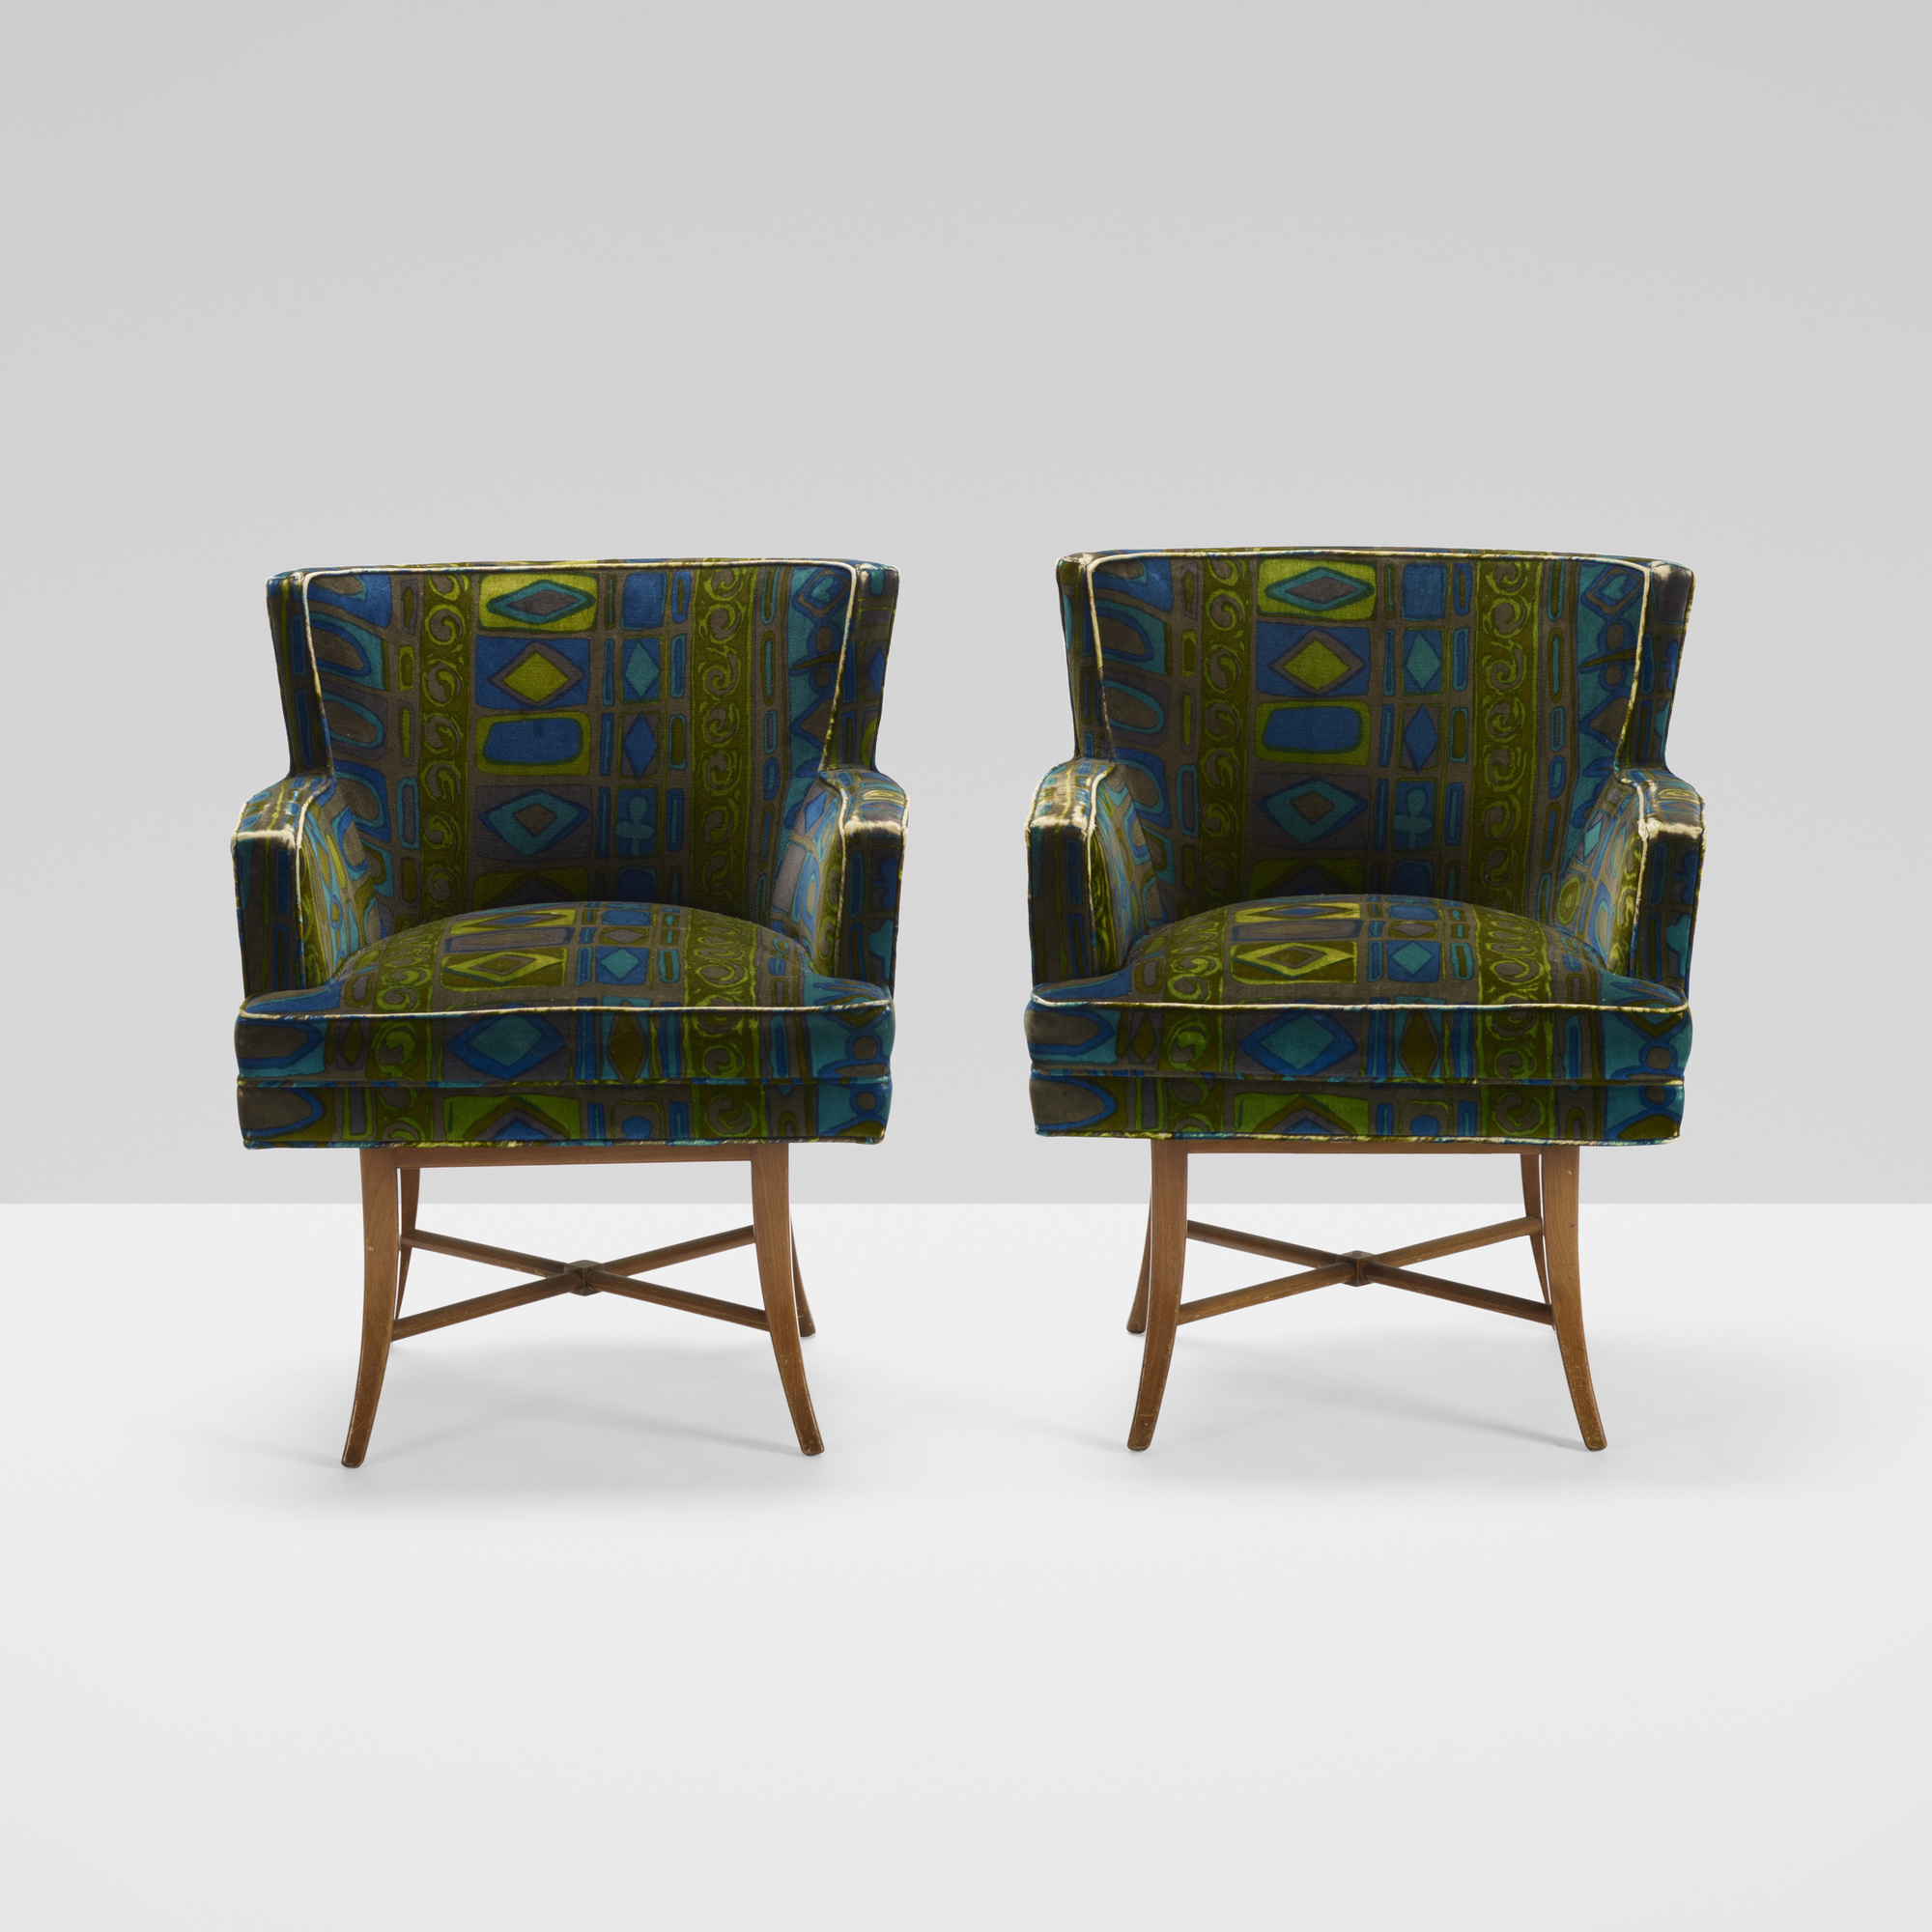 399: Tommi Parzinger / armchairs, pair (2 of 3)